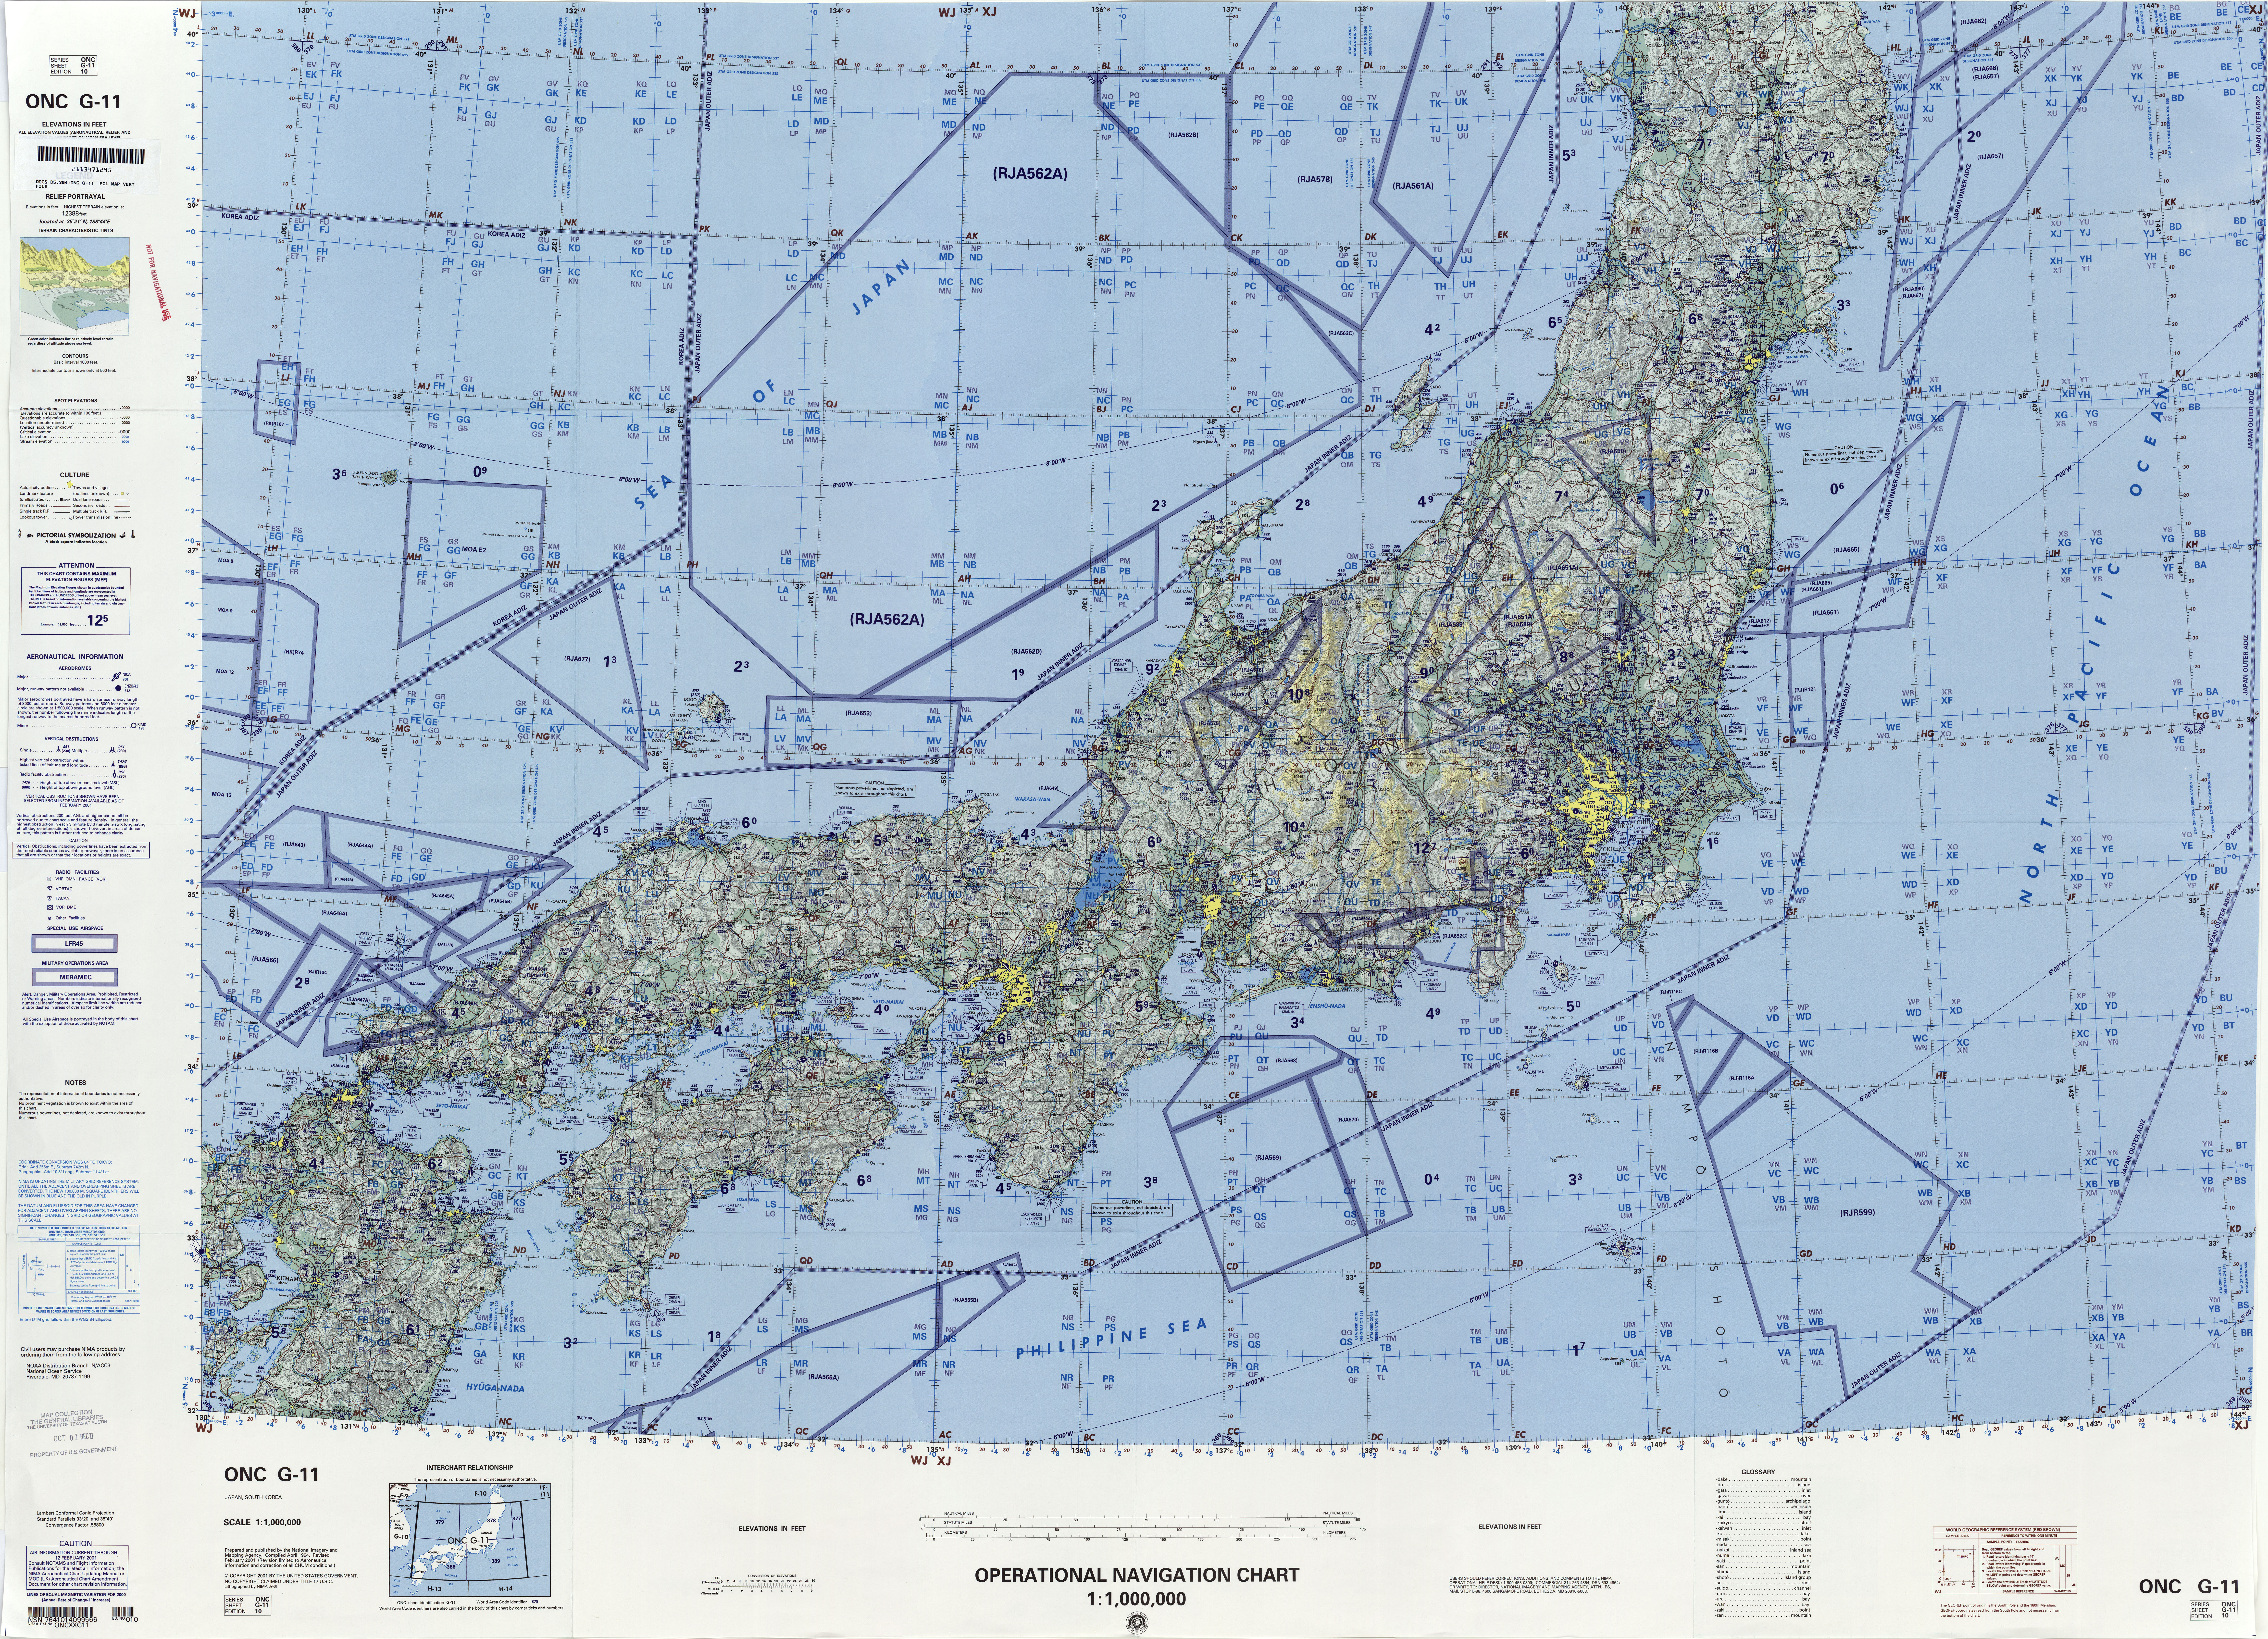 Operational navigation charts perry casta eda map collection ut